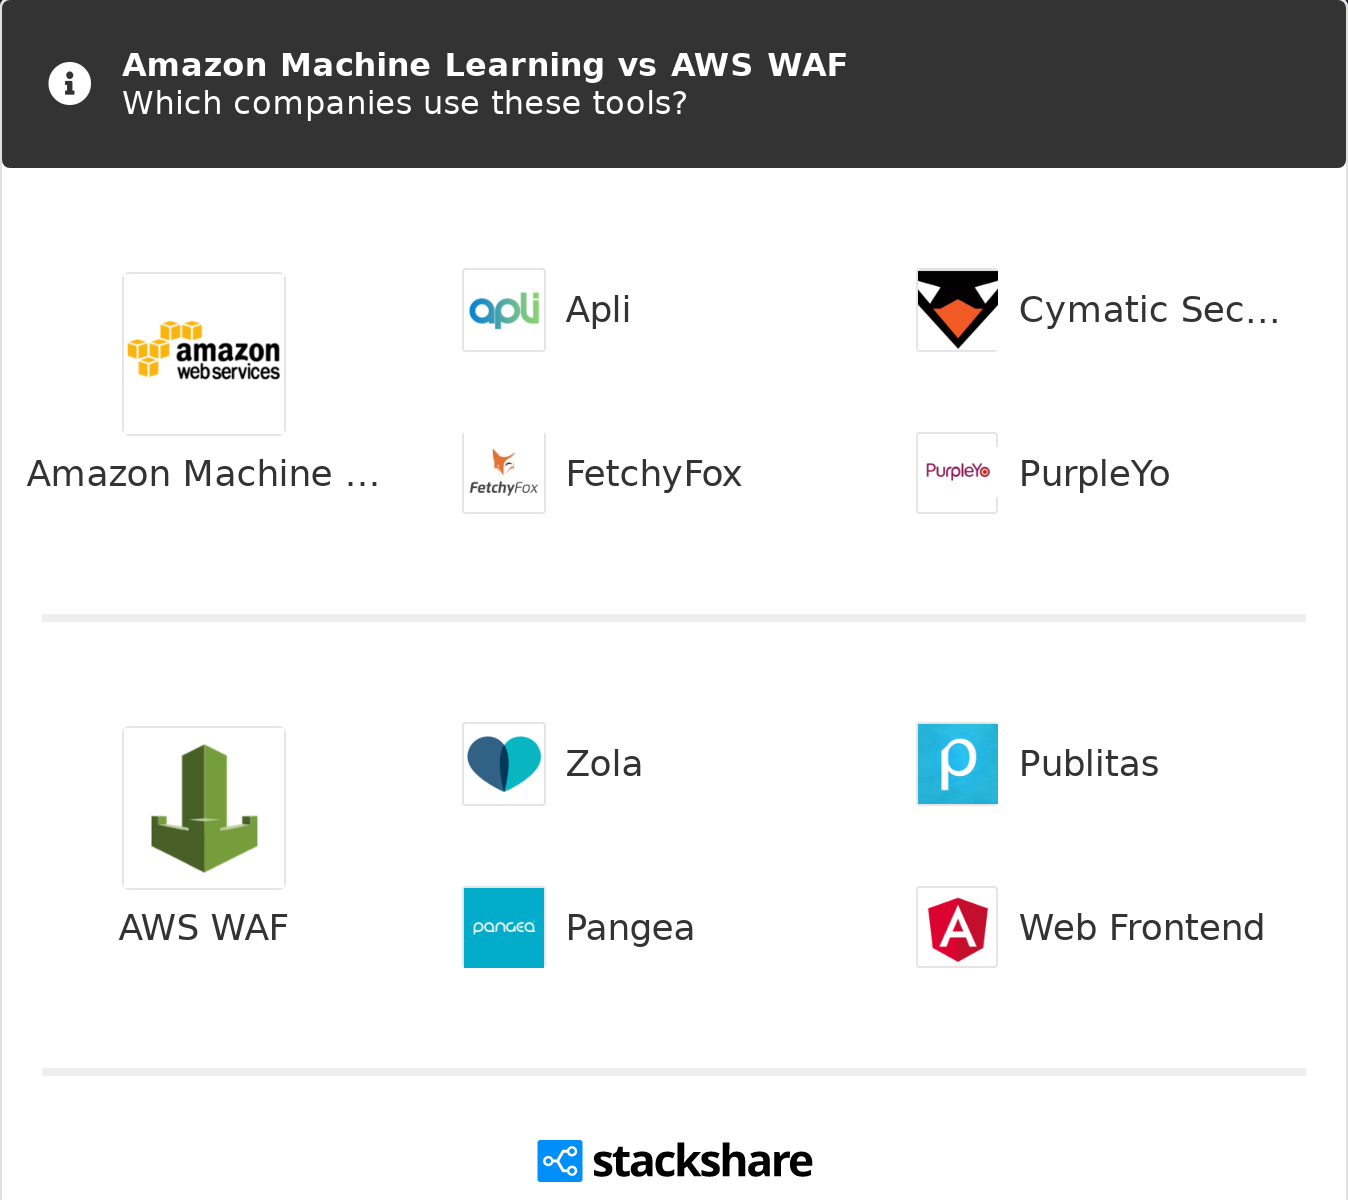 Amazon Machine Learning Vs Aws Waf What Are The Differences